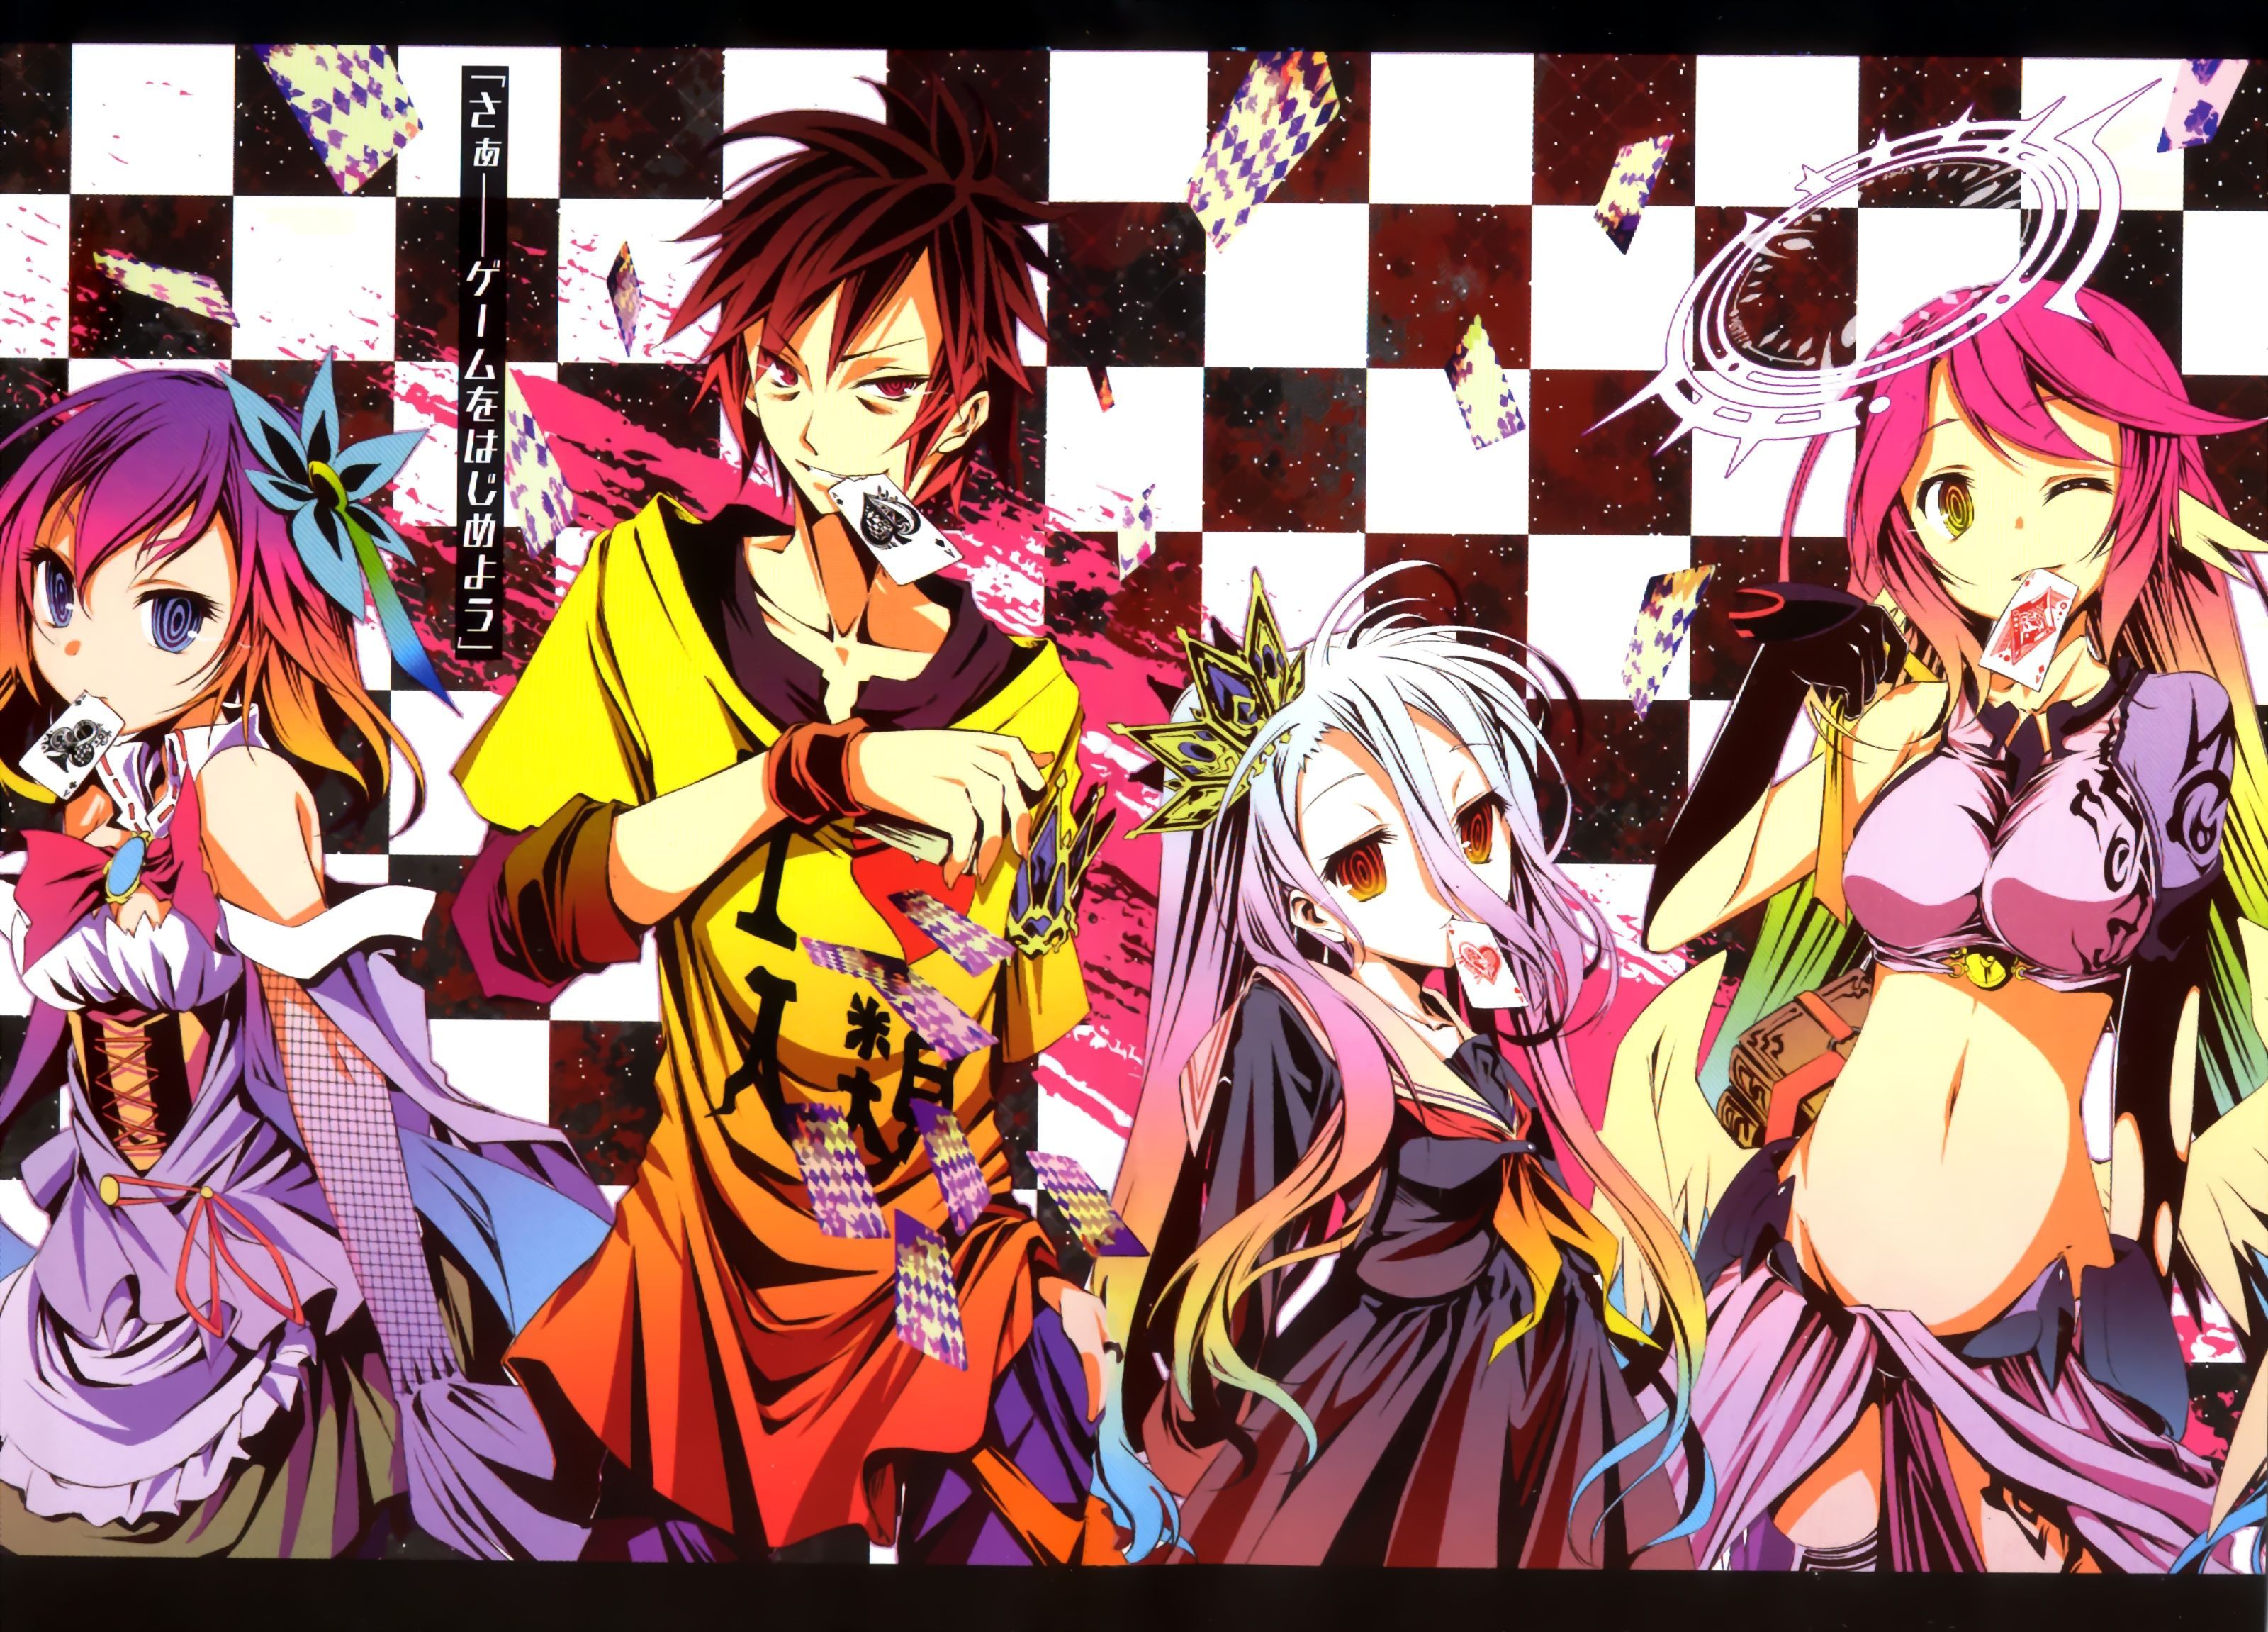 Pin By Ani Sazu On No Game No Life Pinterest Games Manga And